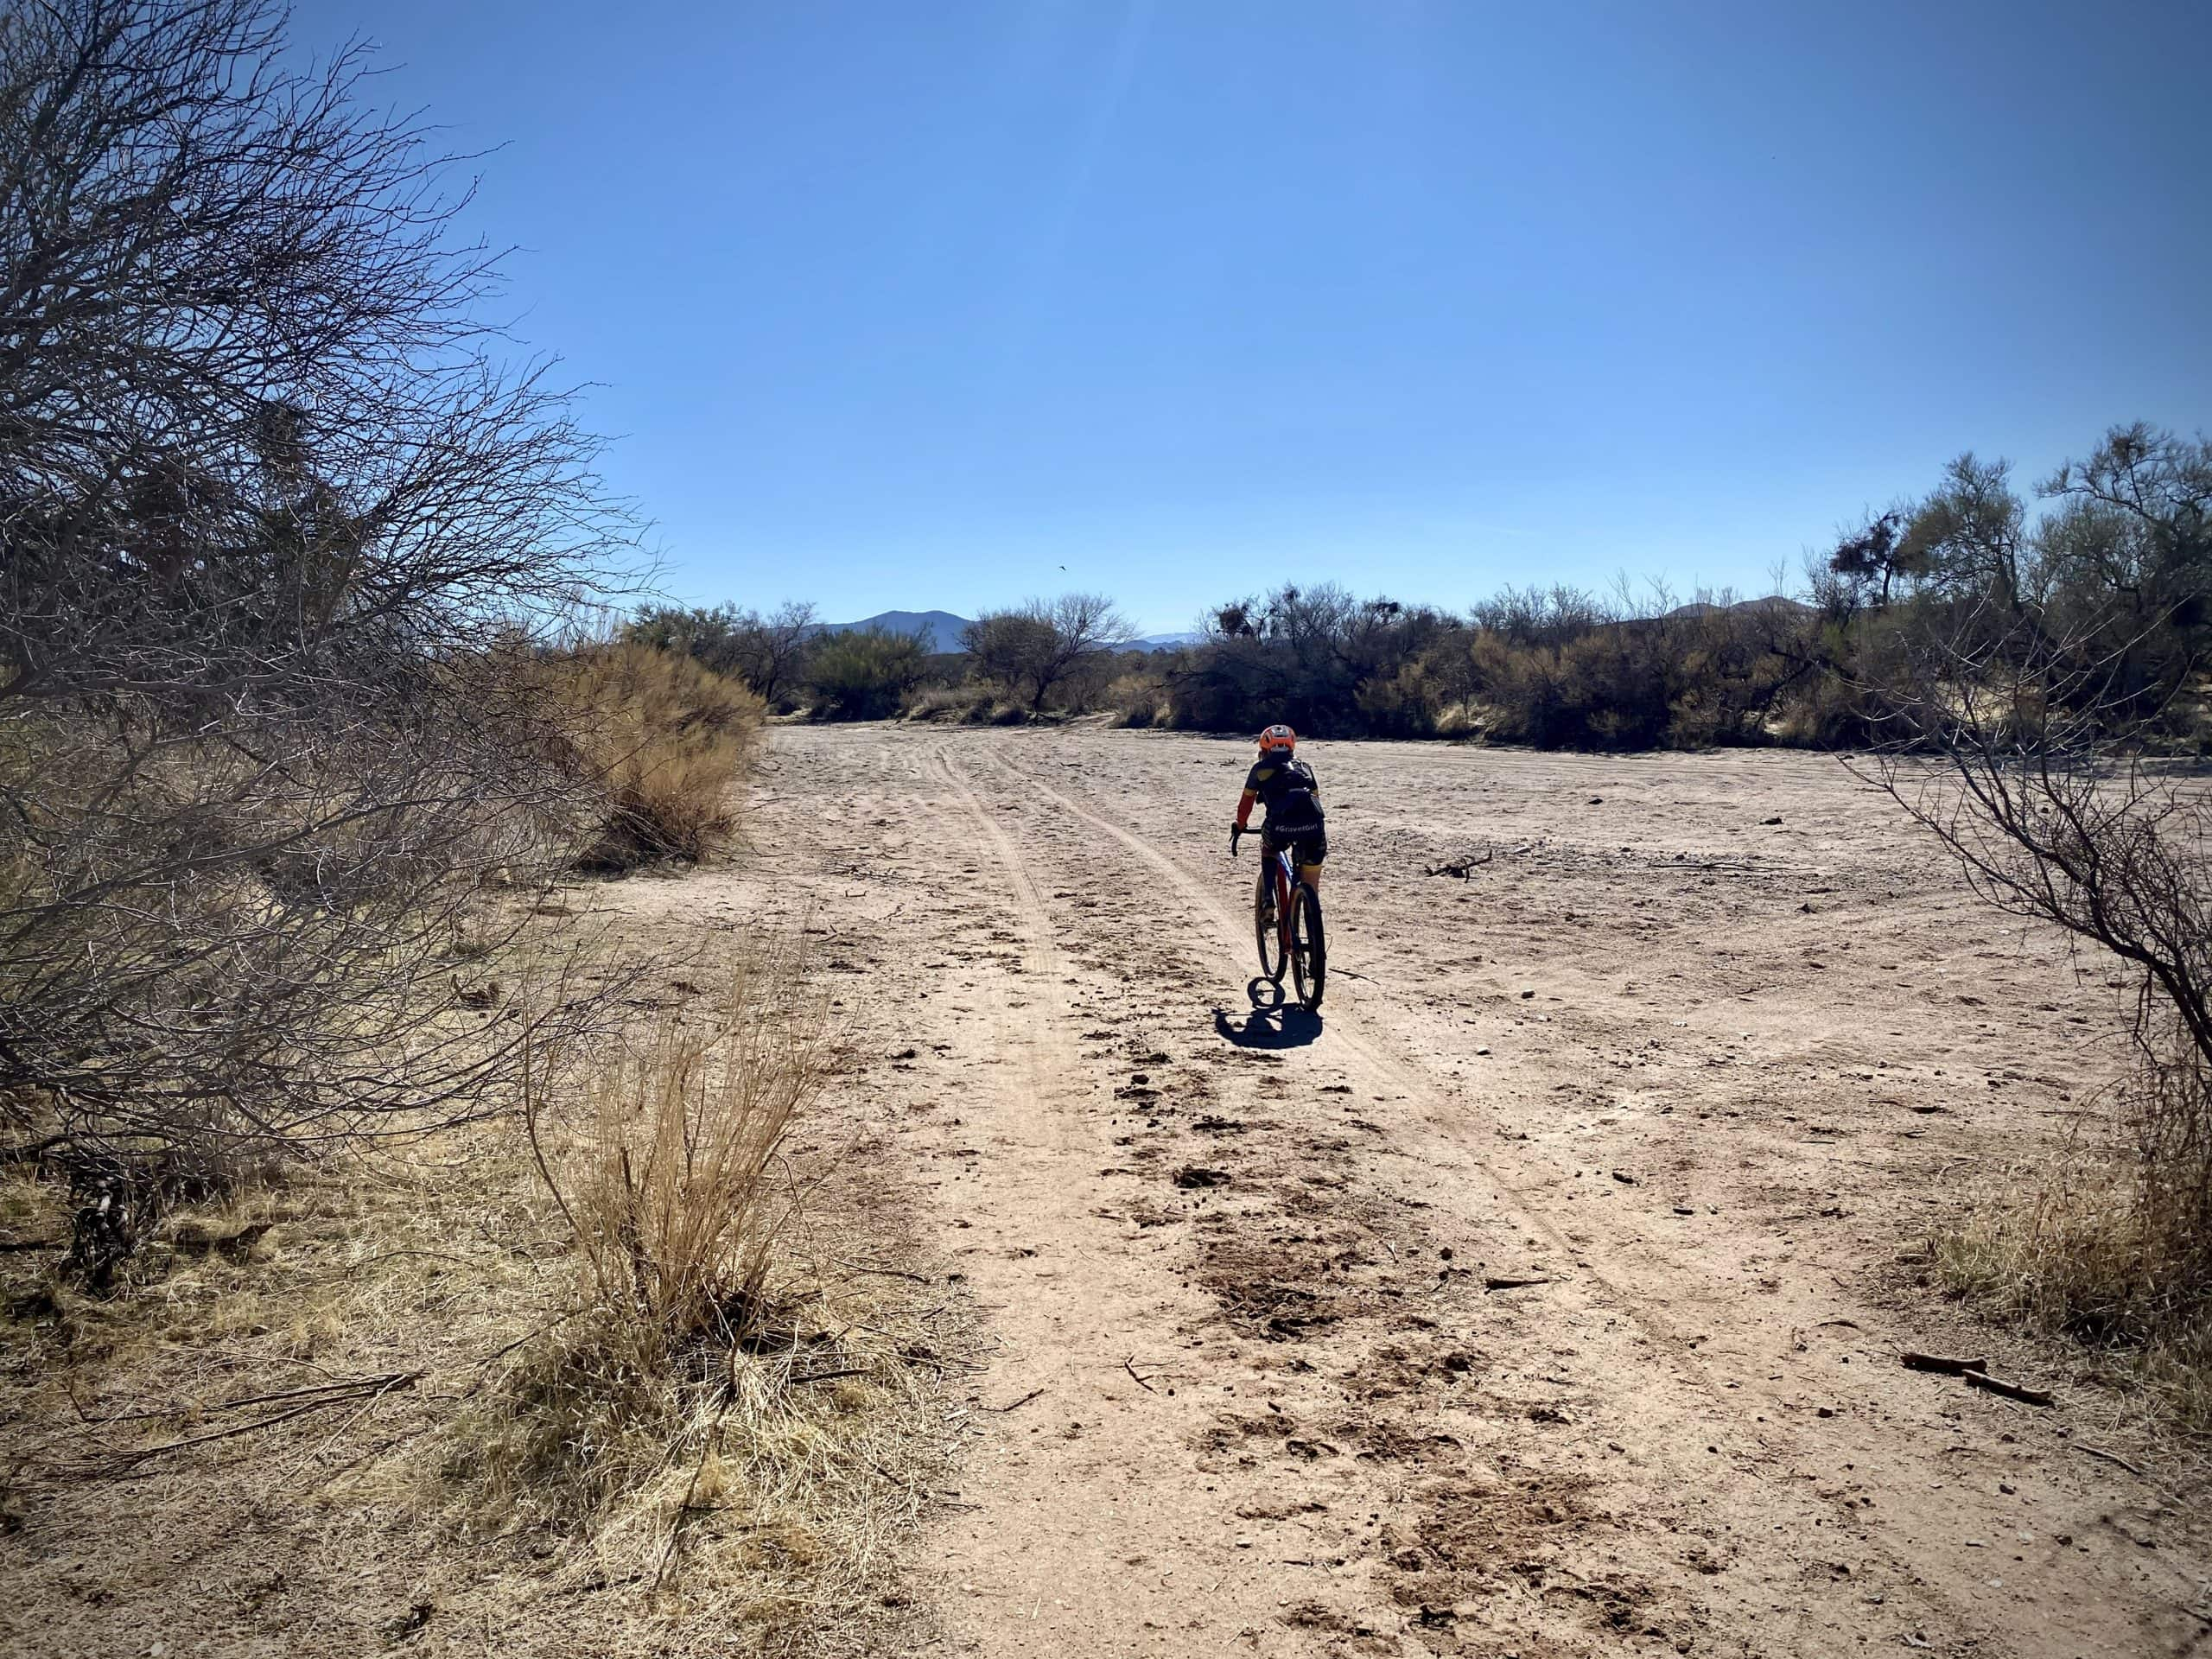 Gravel cyclist riding through a long, sandy was in the Sonoran desert between Tucson and Florence, Arizona.